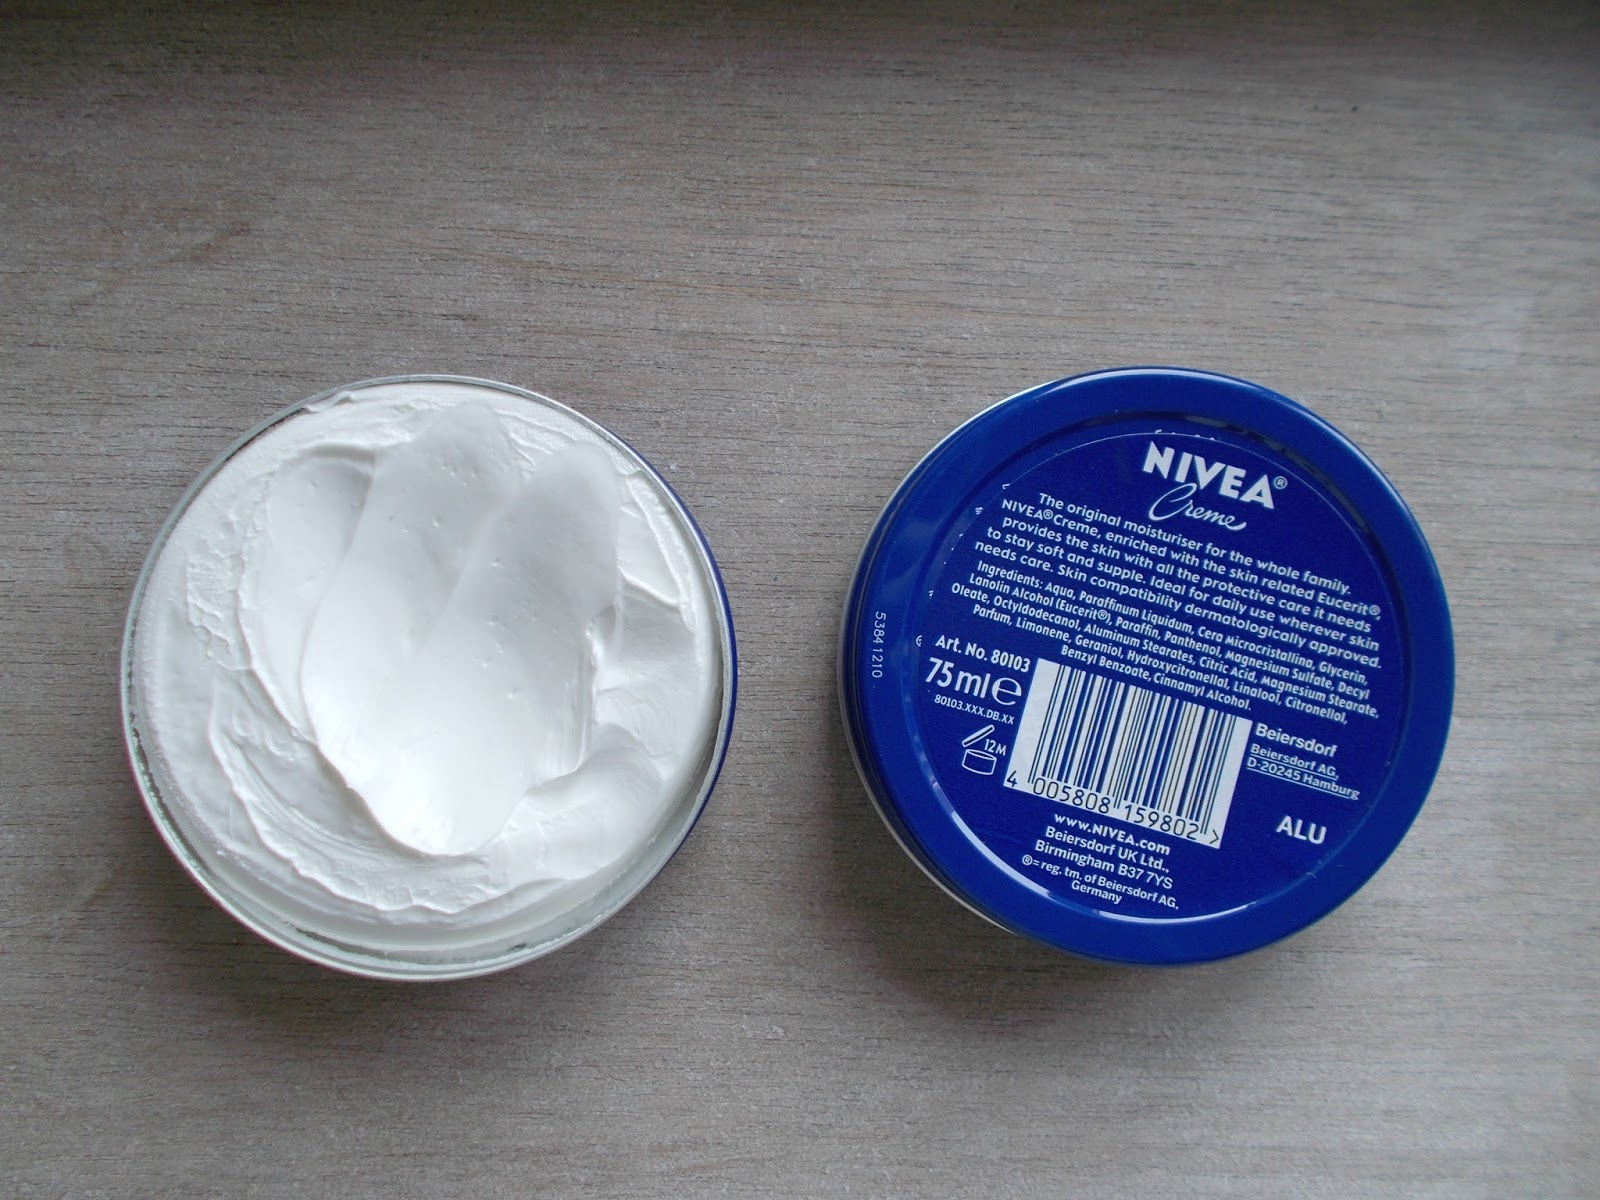 Nivea Creme 75ml limited edition tins